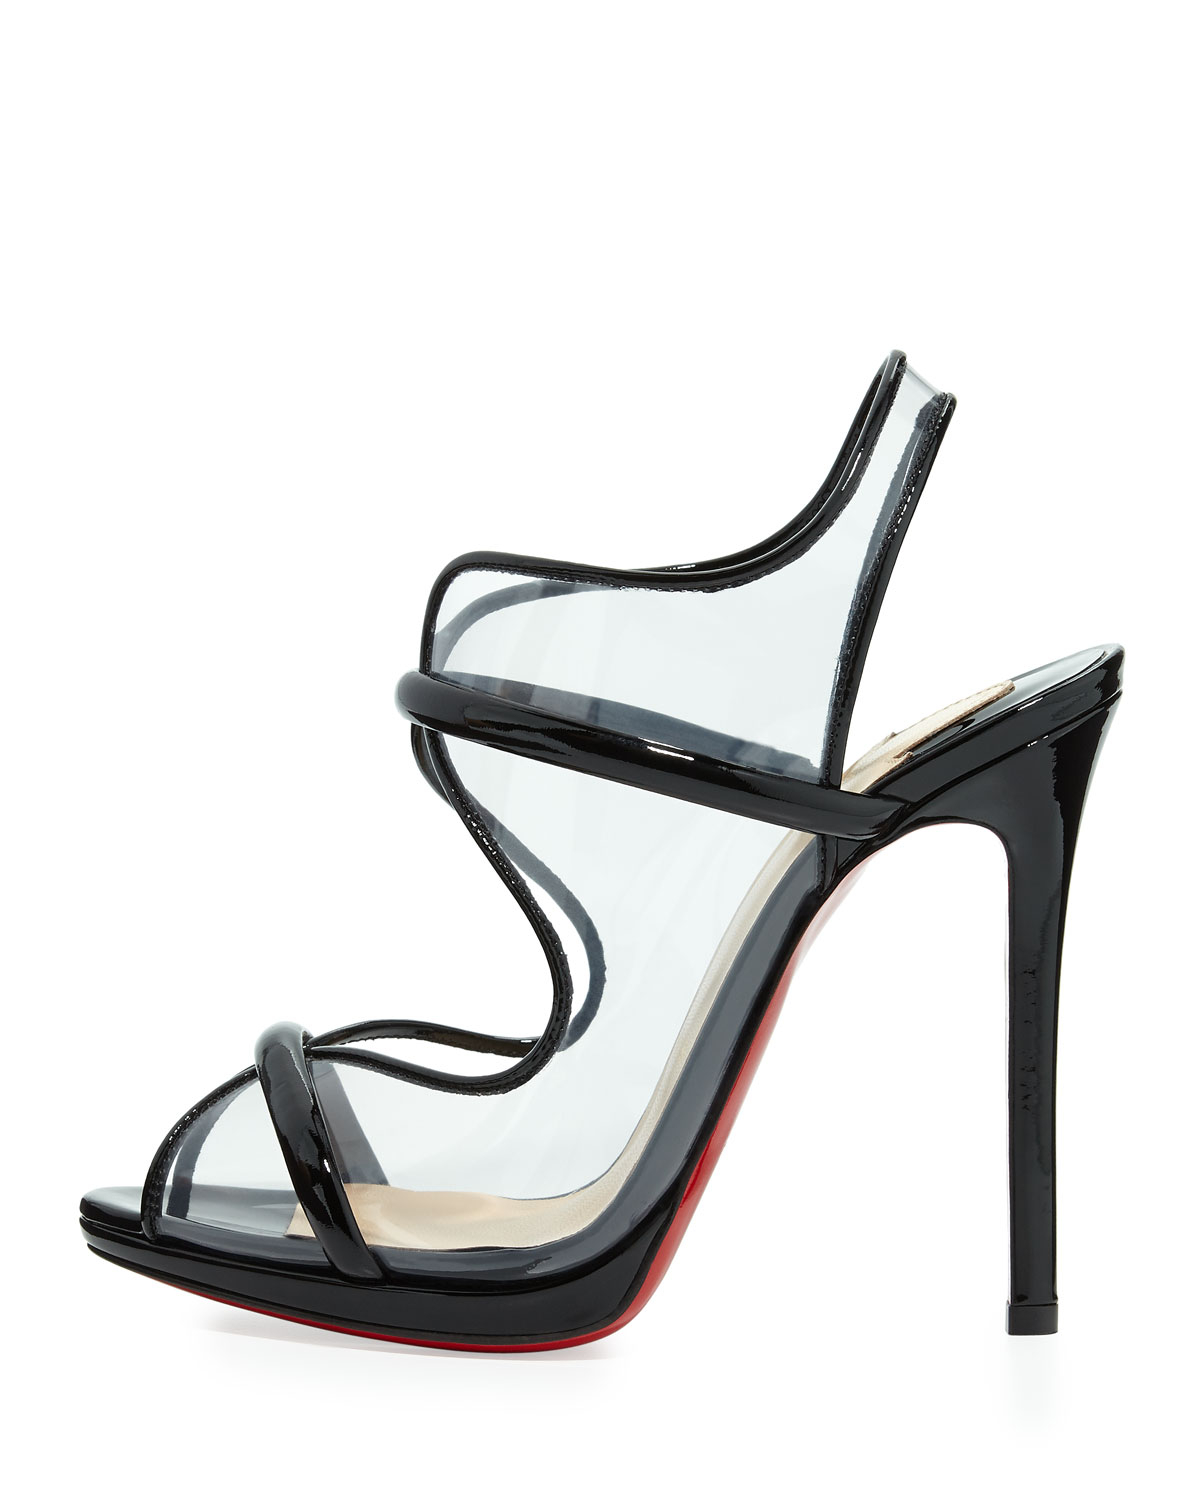 louis vuitton shoes for men - Artesur ? christian louboutin sandals Transparent PVC black patent ...